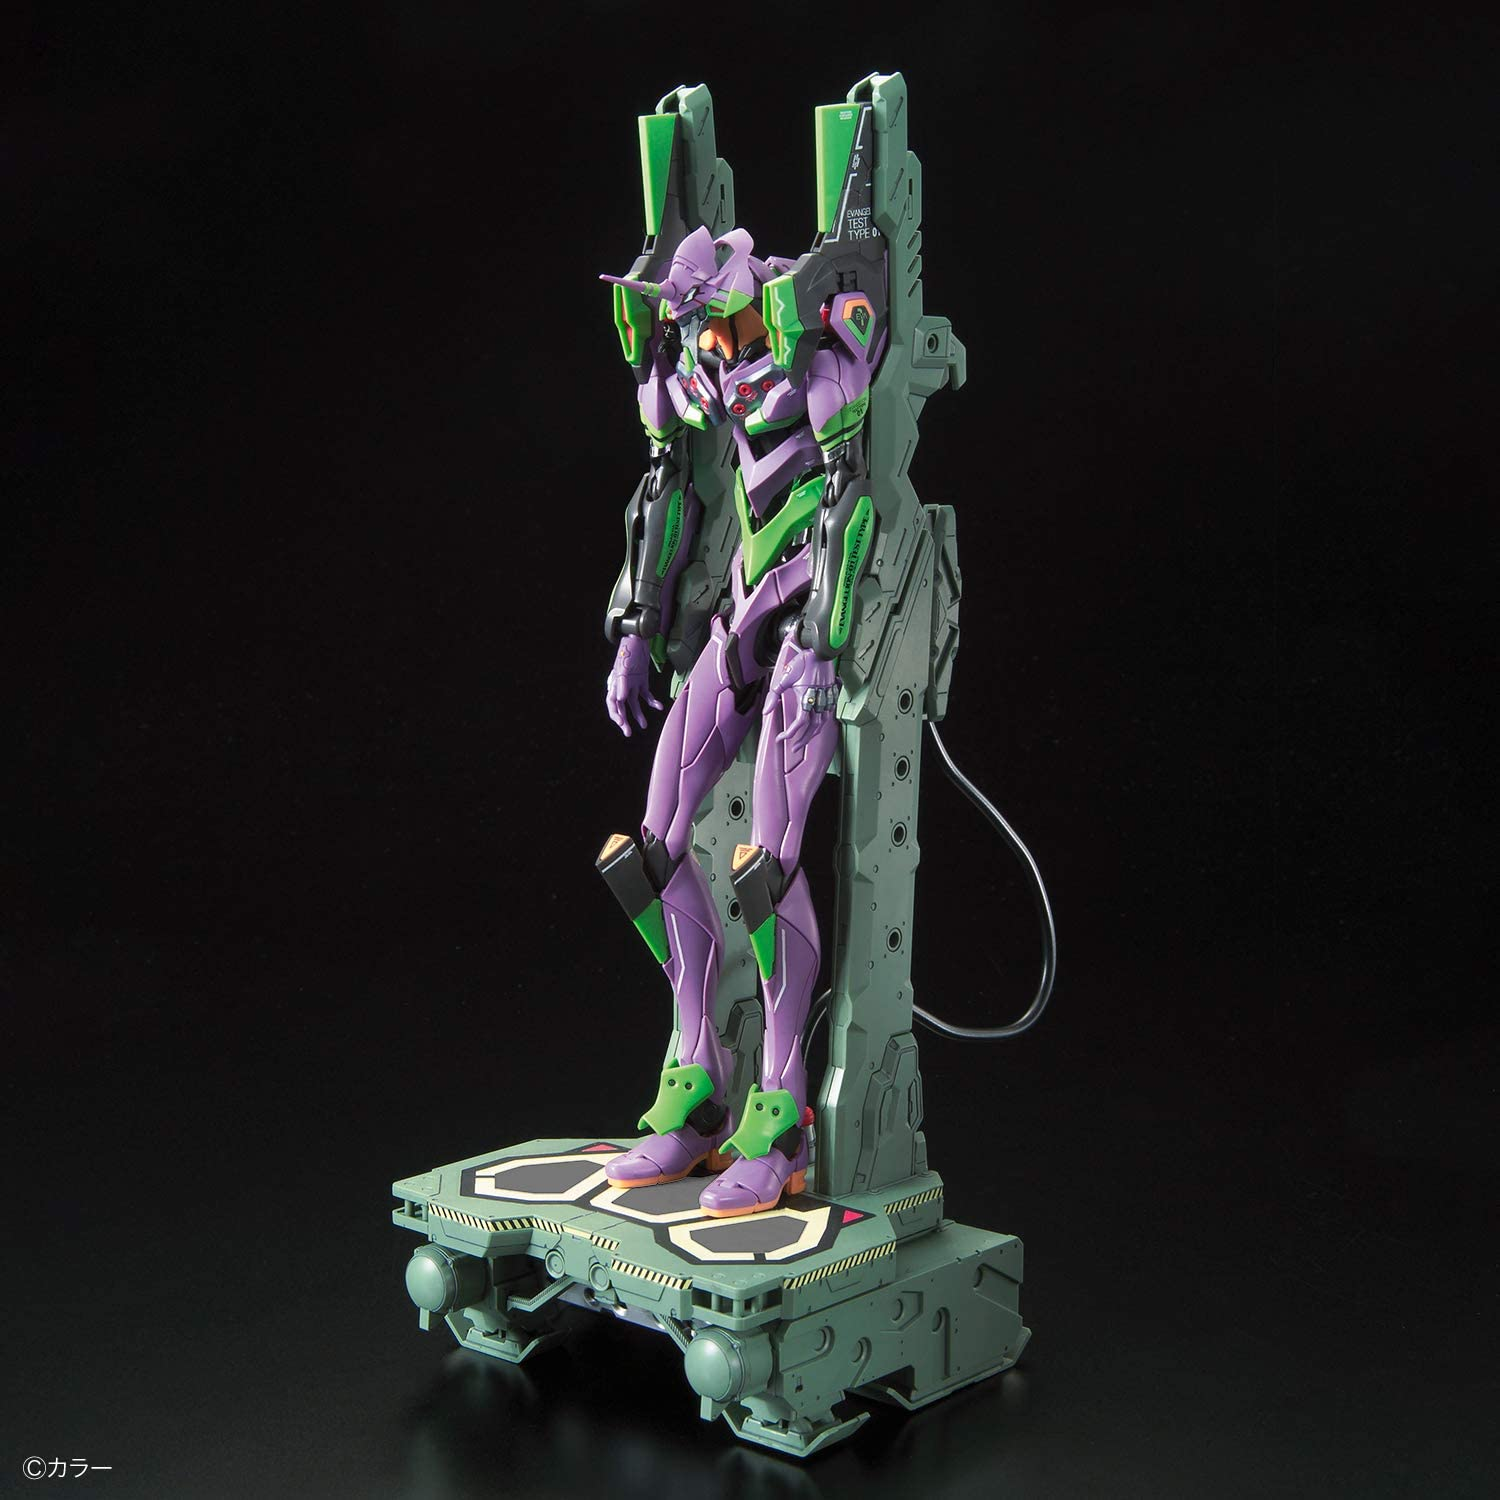 BANDAI SPIRITS RG Evangelion UNIT-00 Multipurpose Humanoid Decisive Weapon